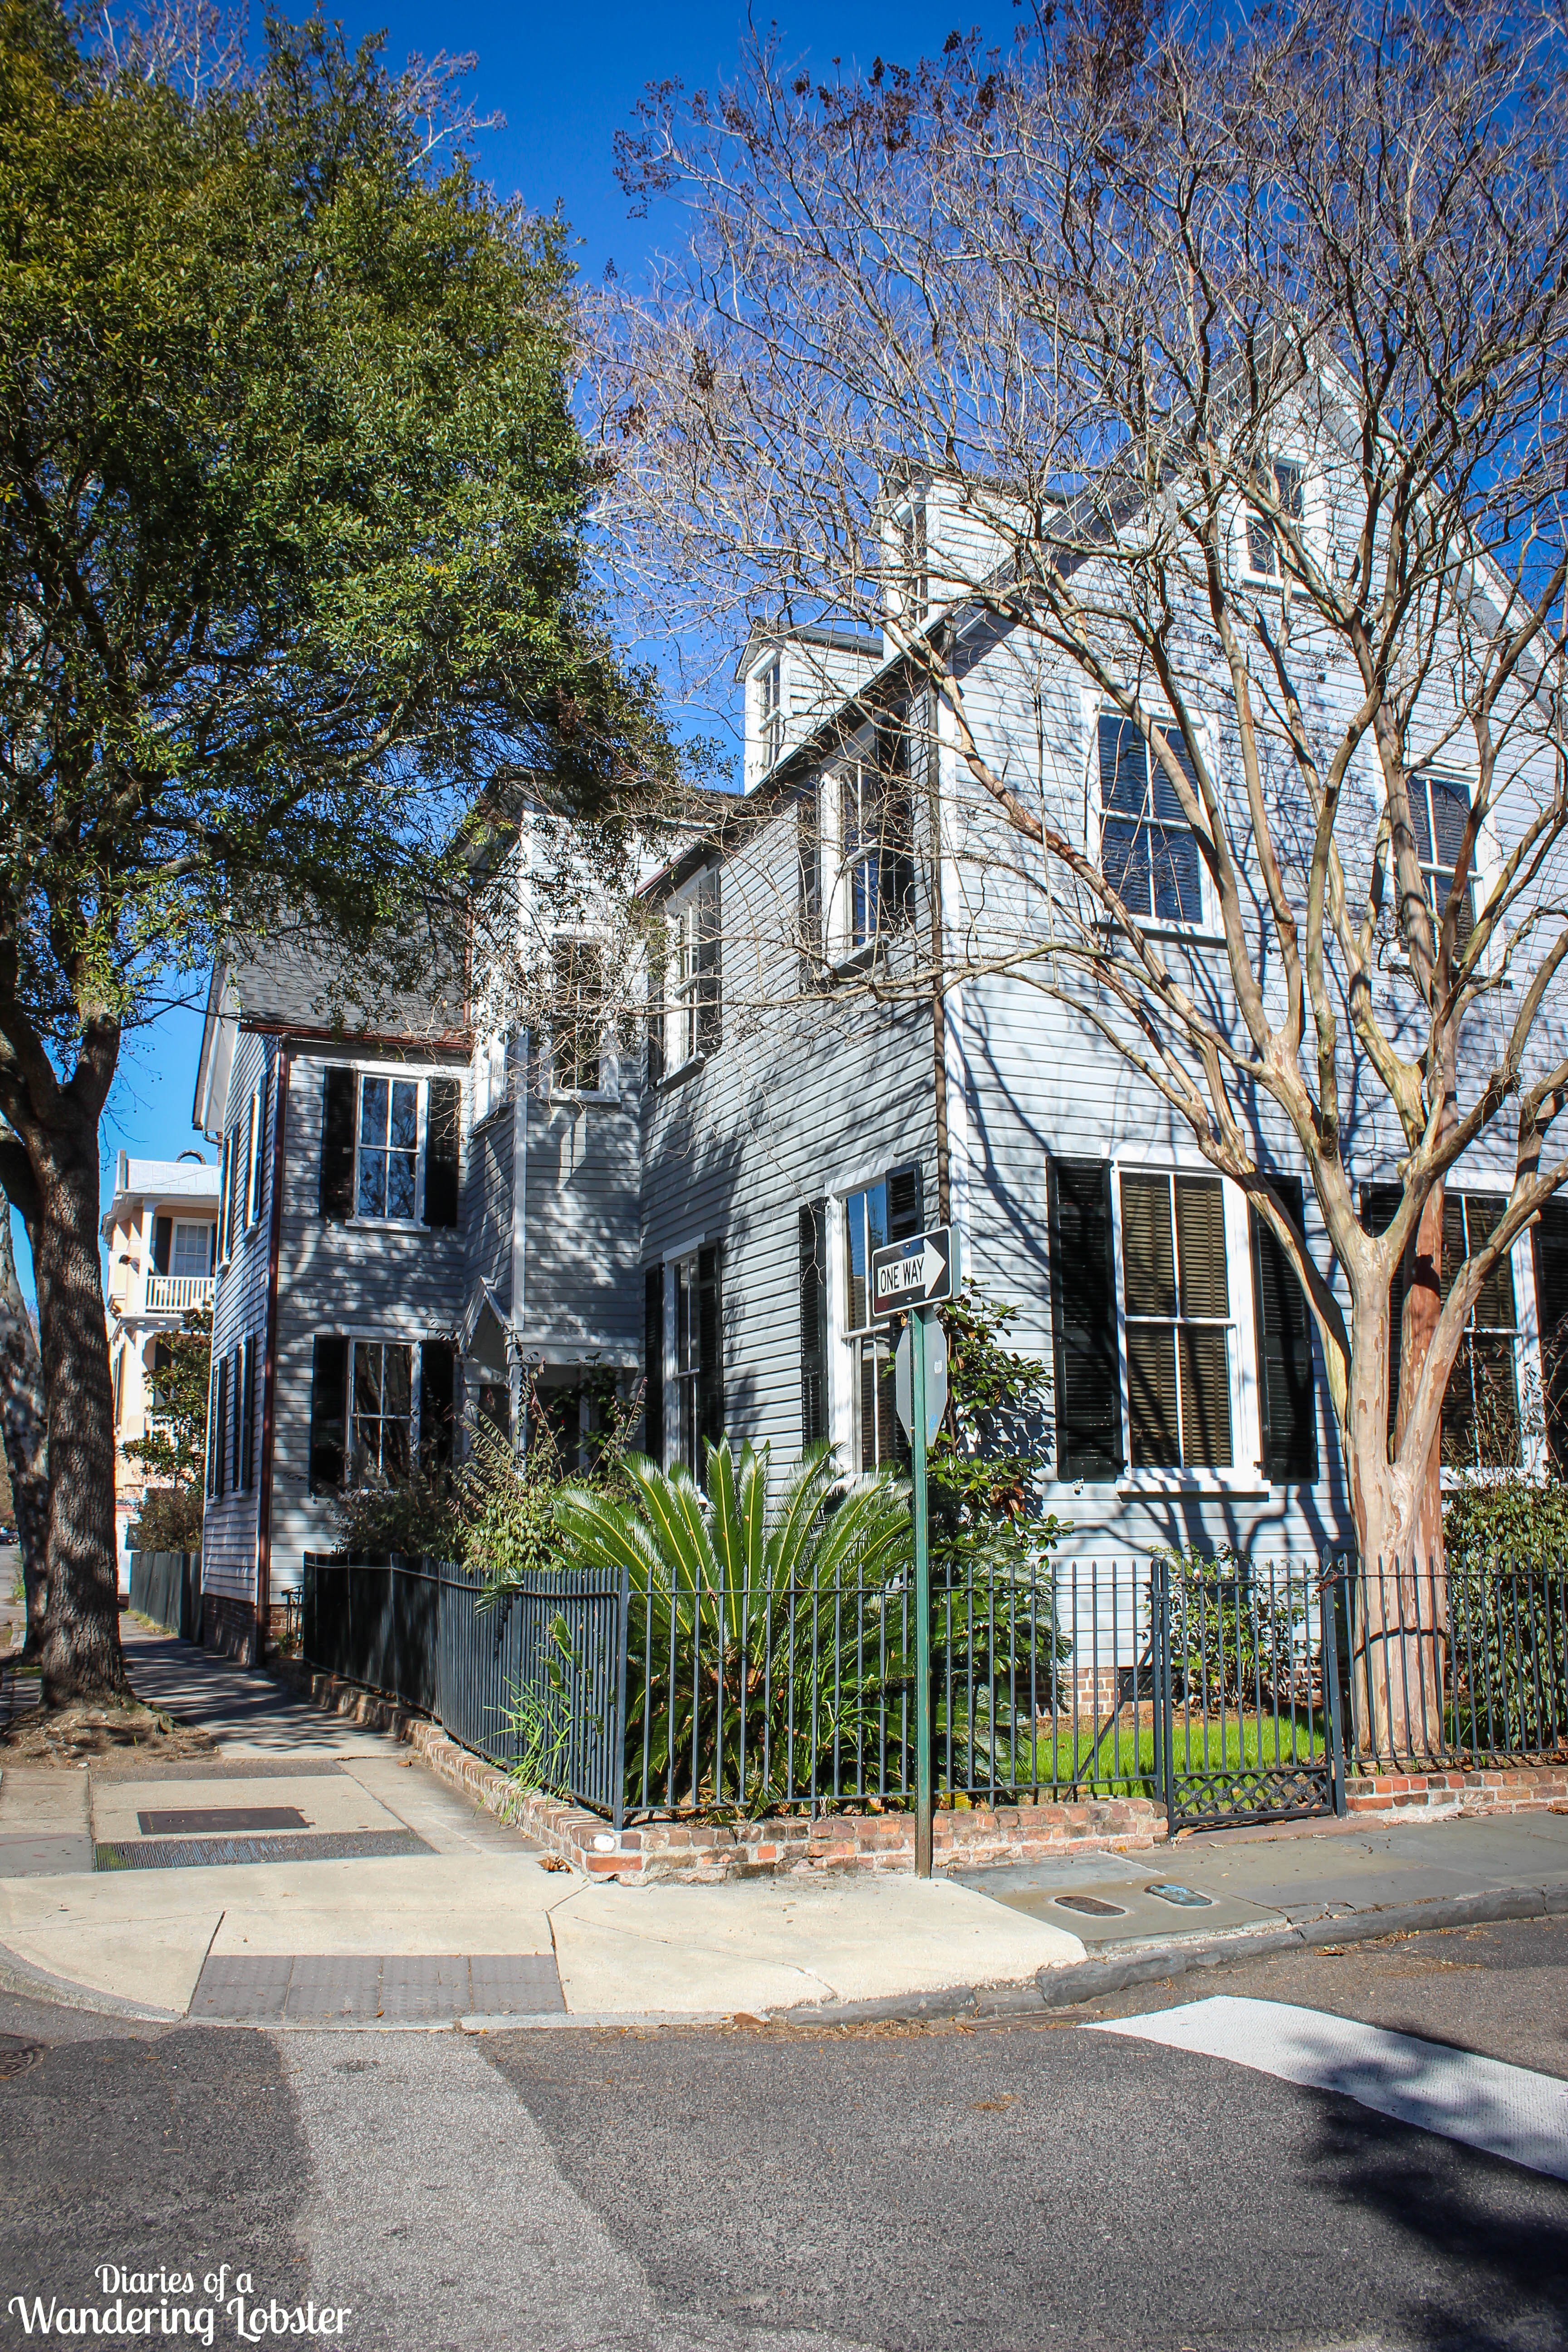 An Architecture Tour of Charleston - Diaries of a Wandering Lobster